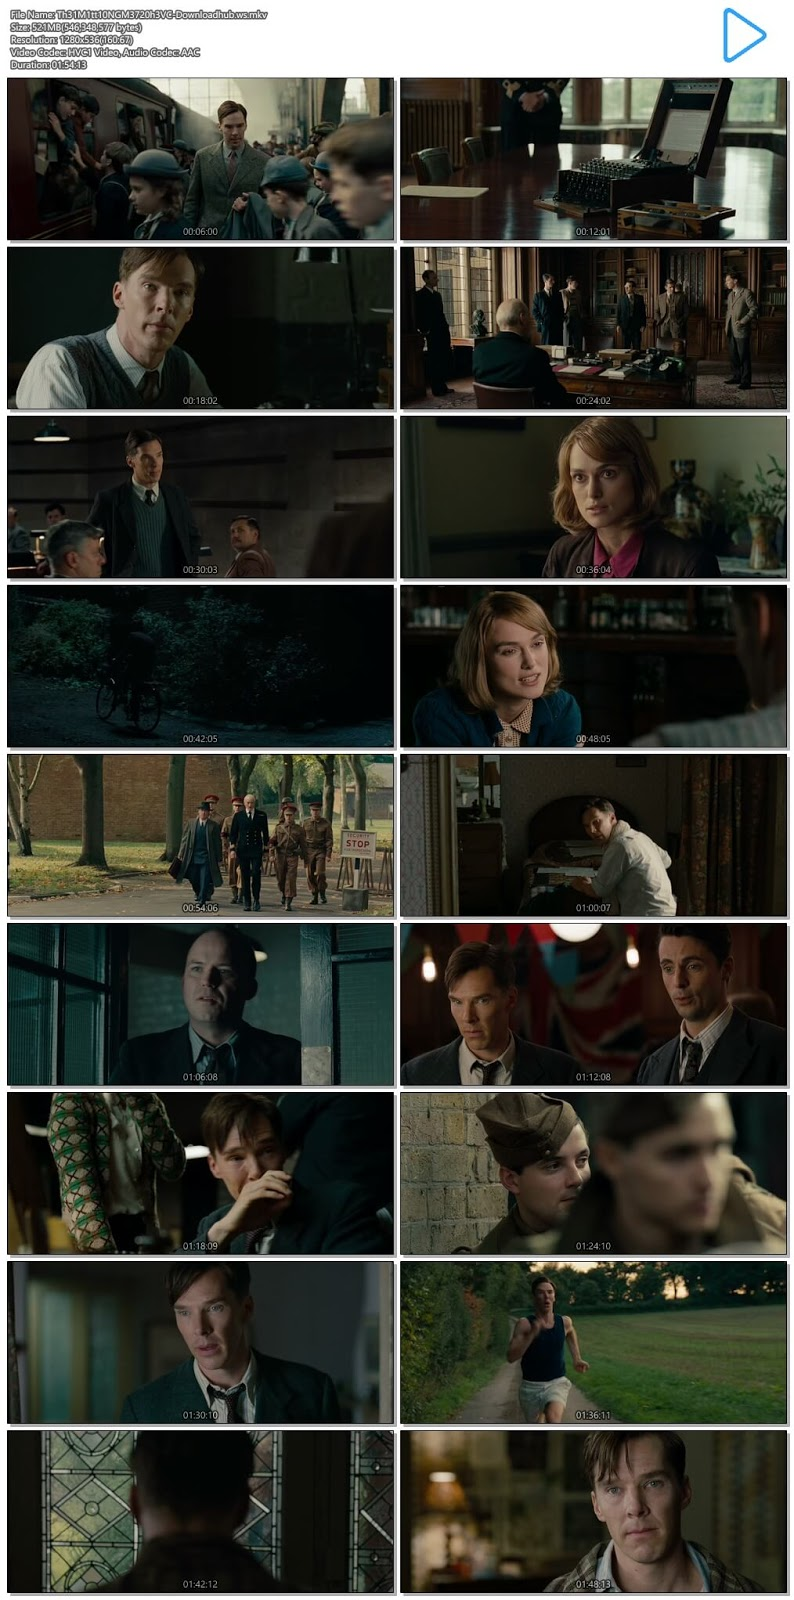 The Imitation Game 2014 Hindi Dual Audio 720p HEVC BluRay Free Download